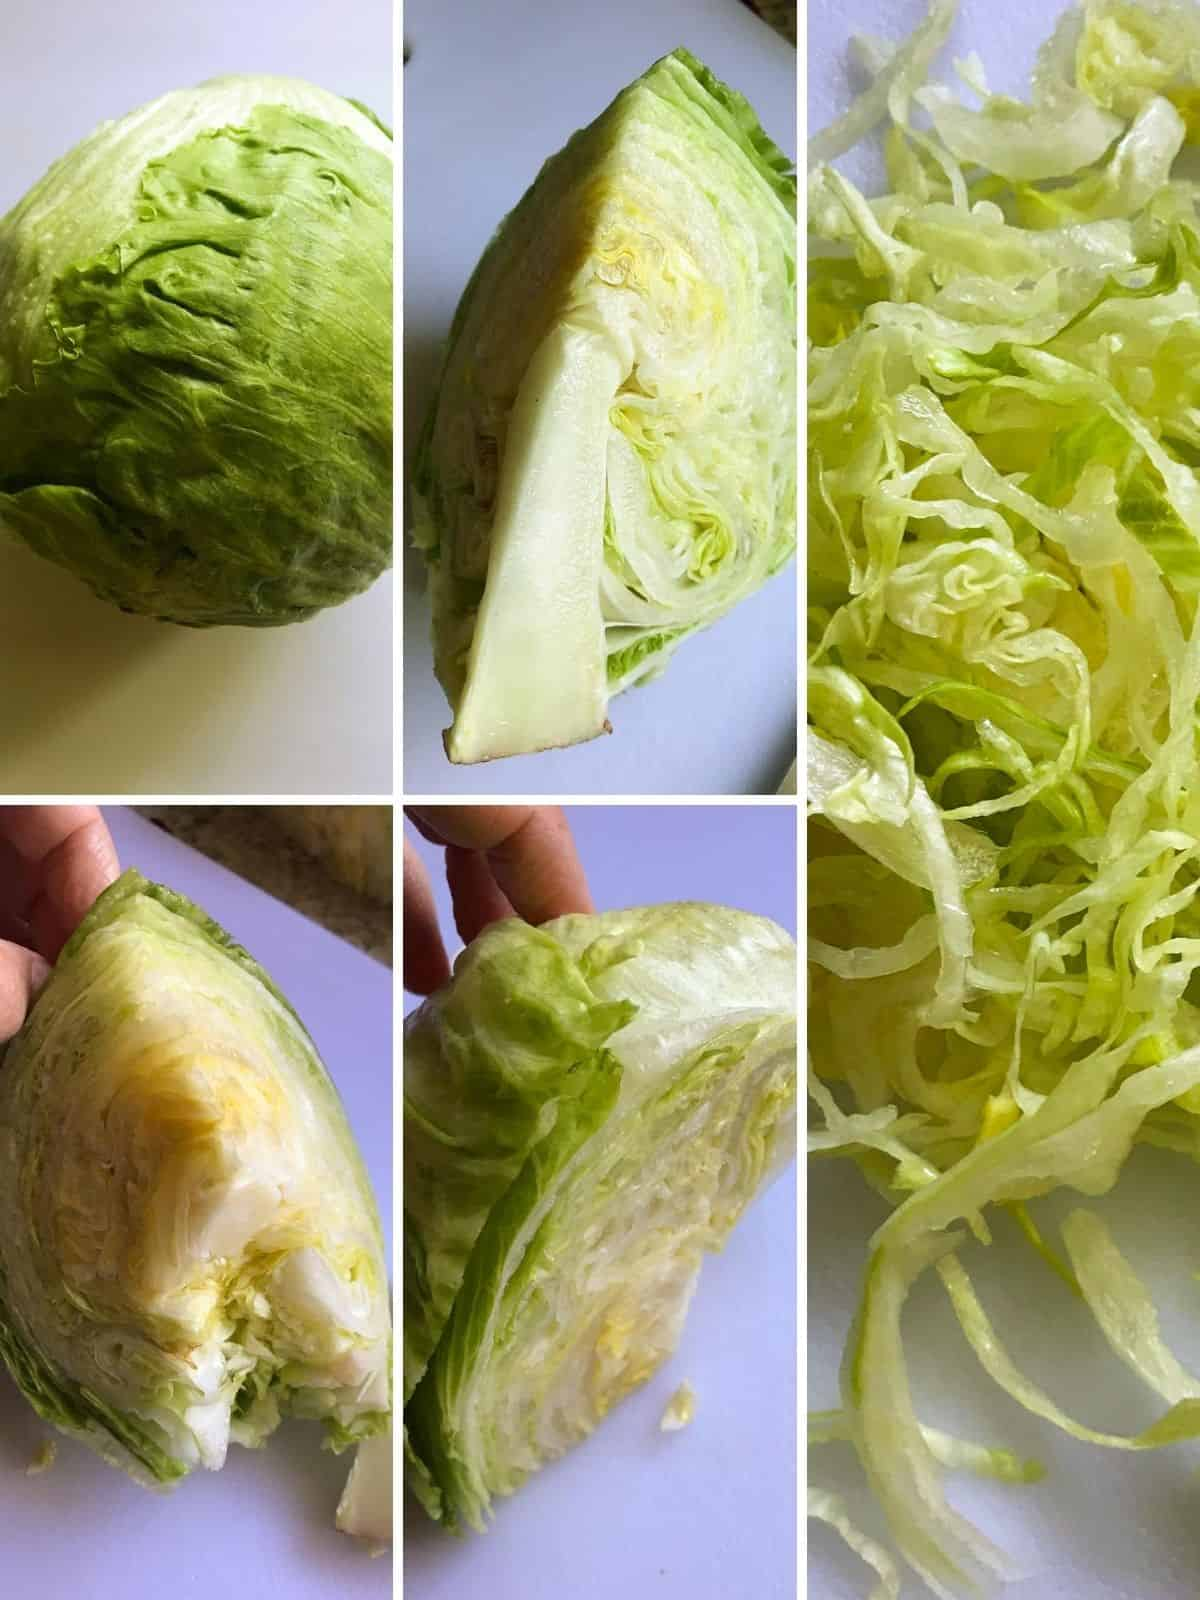 Lettuce being shredded for BLT.